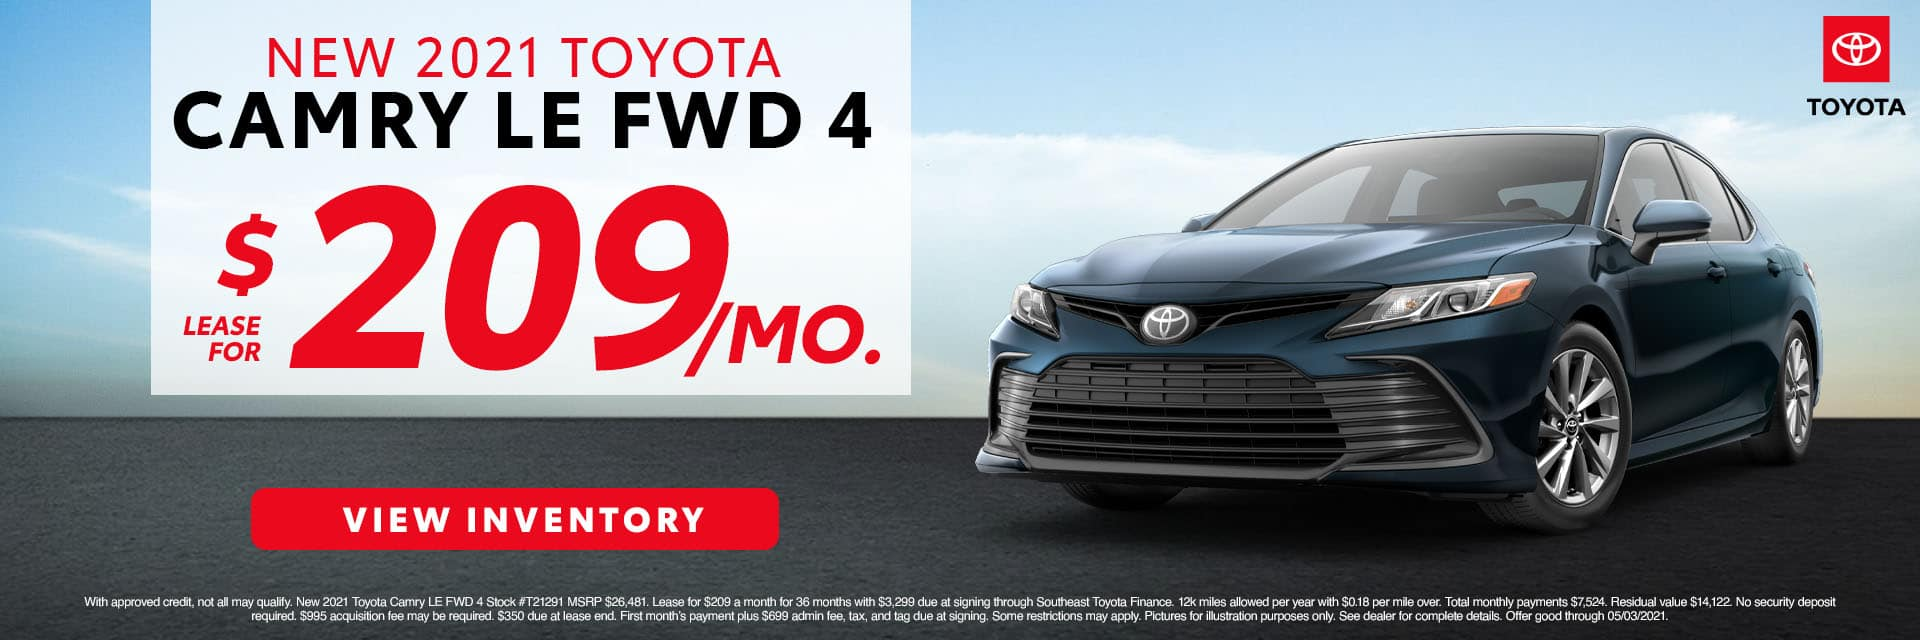 CLTW-April 2021-2021 Toyota Camry